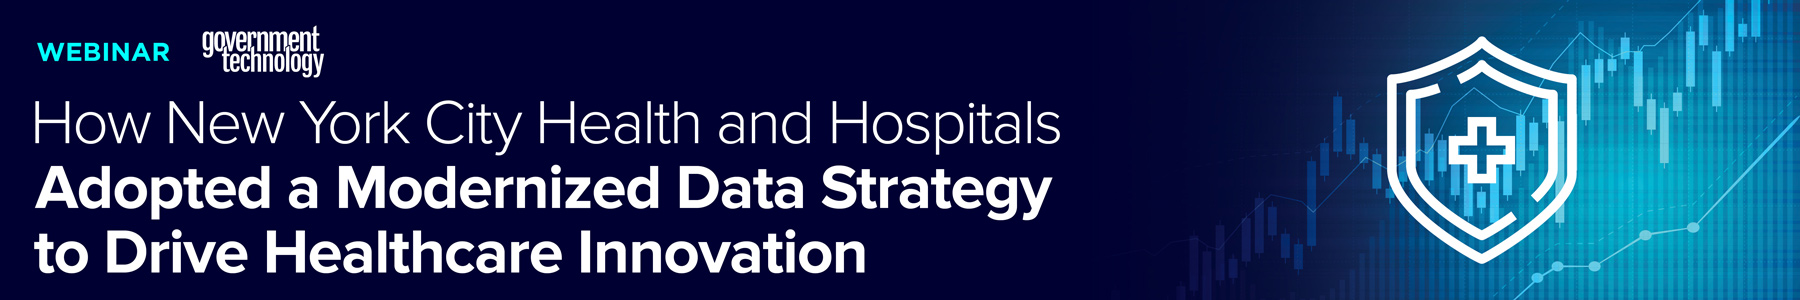 How New York City Health and Hospitals Adopted a Modernized Data Strategy to Drive Healthcare Innovation